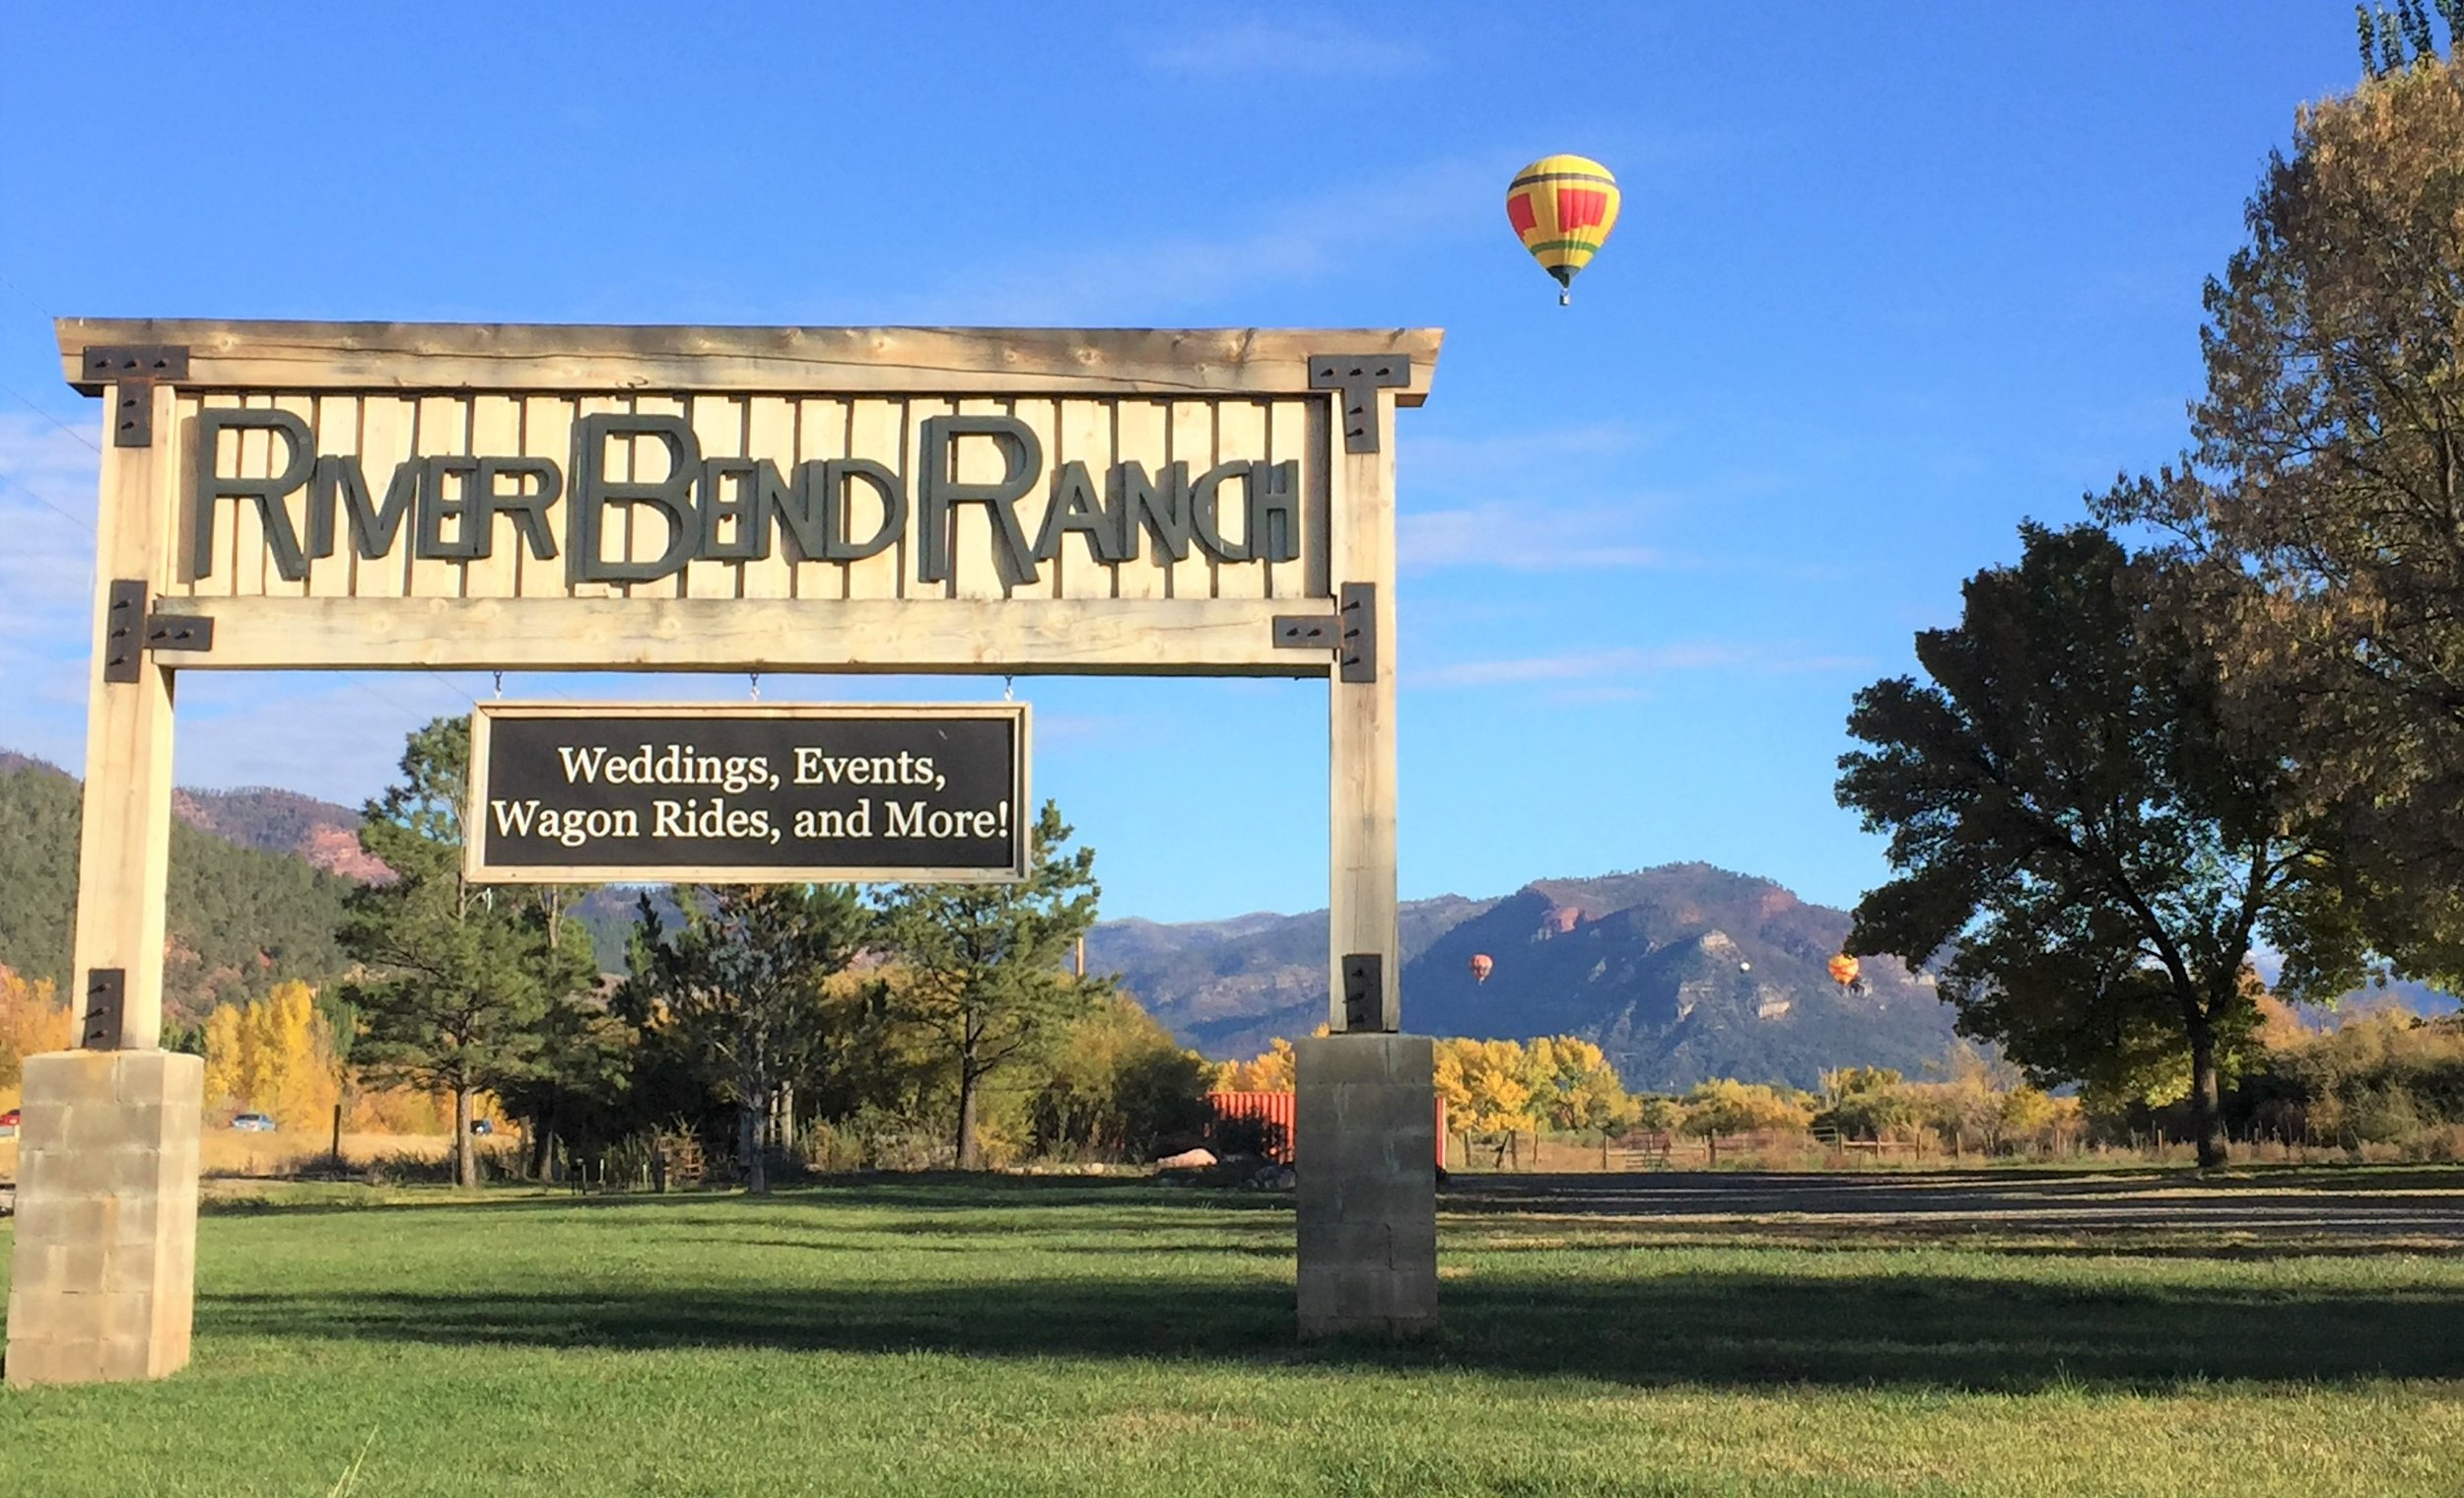 We're for Special Events - River Bend Ranch is a privately-owned ranch nestled in the beautiful Animas Valley just a few miles north of Durango, Colorado. We operate as a wedding and event venue all year long with our rustic event center.Several times a year, we get to enjoy a scene like this, with hot air balloons scattered across the sky. It's not uncommon to have a balloon land on the property and we enjoy it every time they touch down.